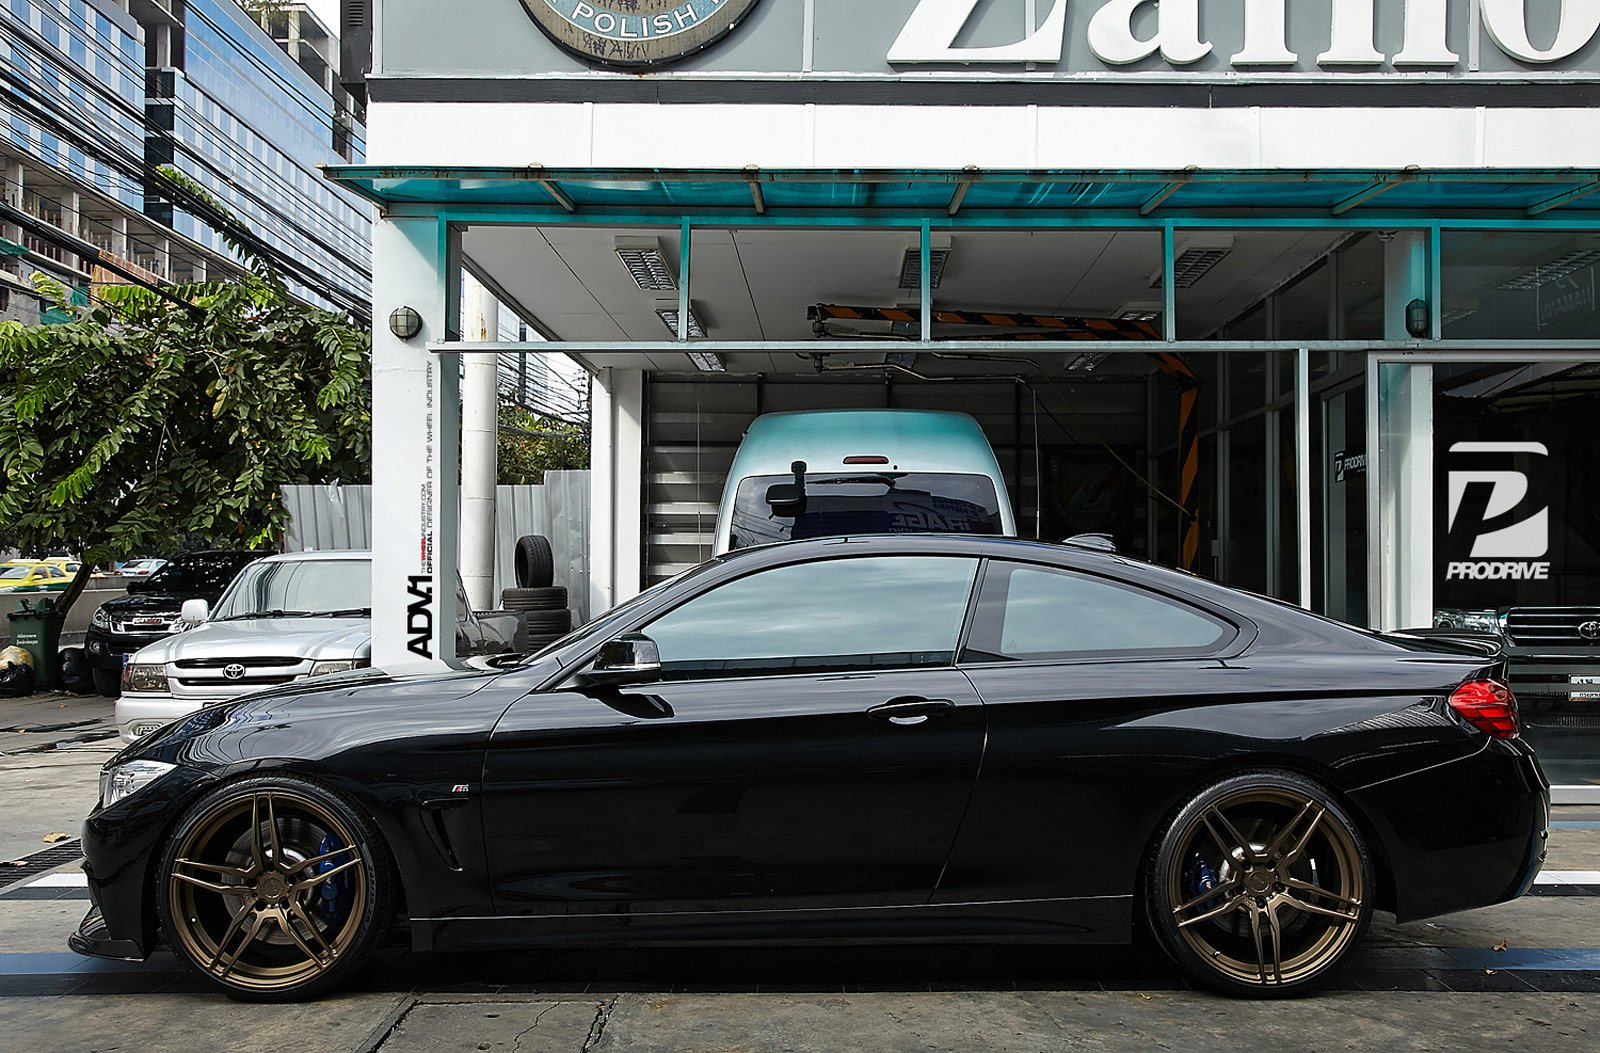 adv1 wheels bmw f32 435i coupe tuning cars wallpaper 1600x1053 542646 wallpaperup. Black Bedroom Furniture Sets. Home Design Ideas